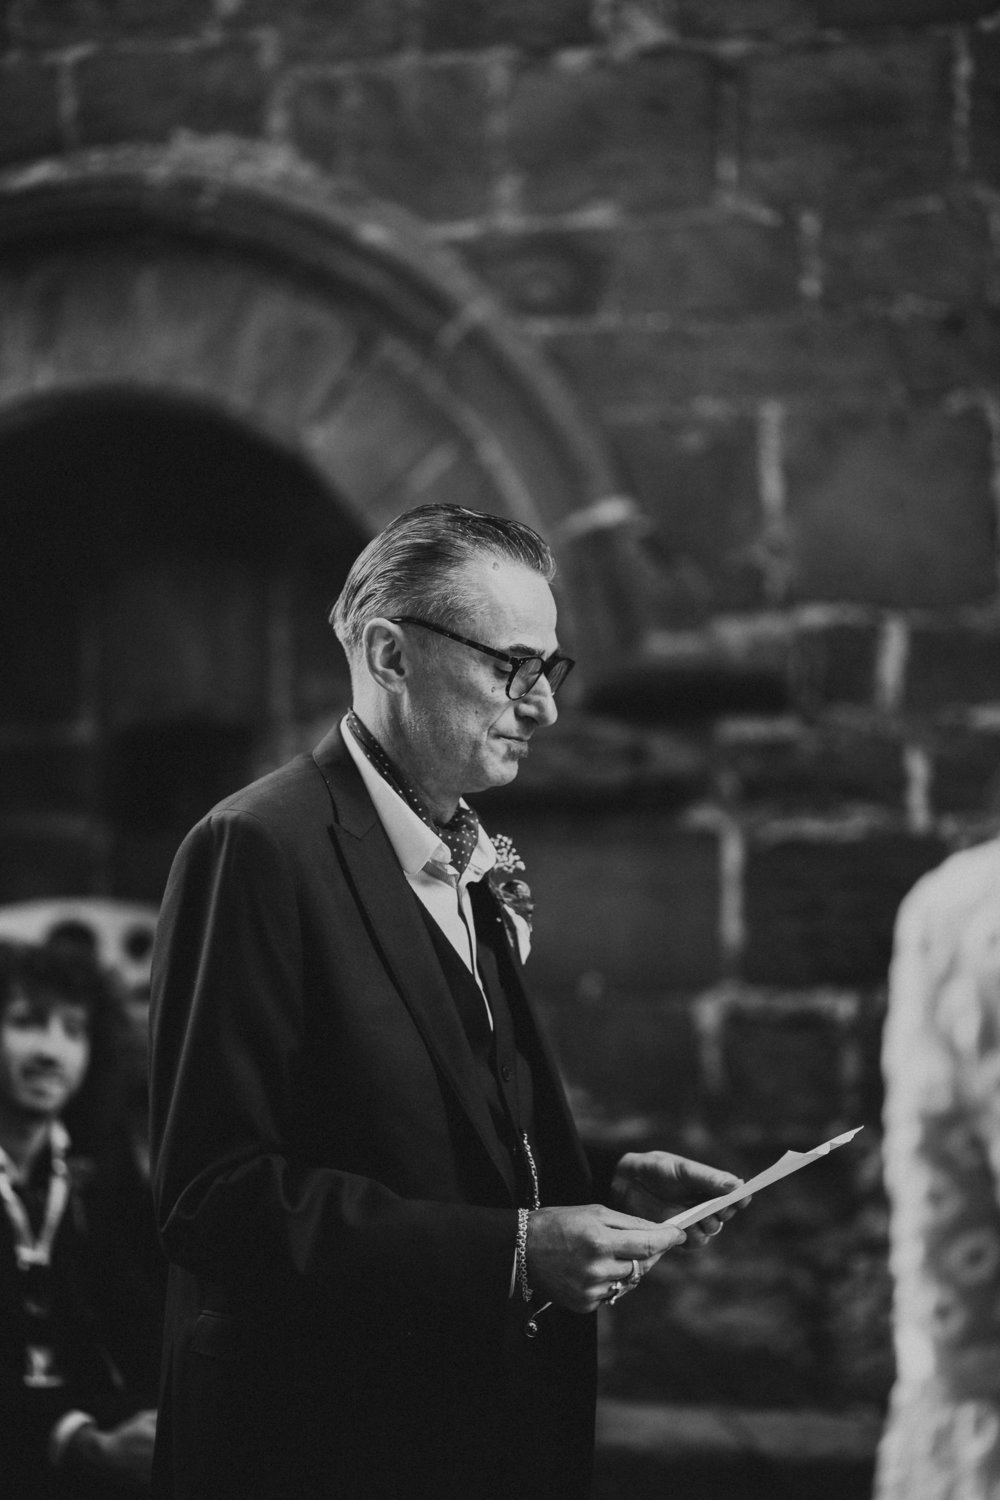 ALTERNATIVE_WEDDING_PHOTOGRAPHY_LEEDS_UK_PJ_PHILLIPS_PHOTOGRAPHY_64.jpg